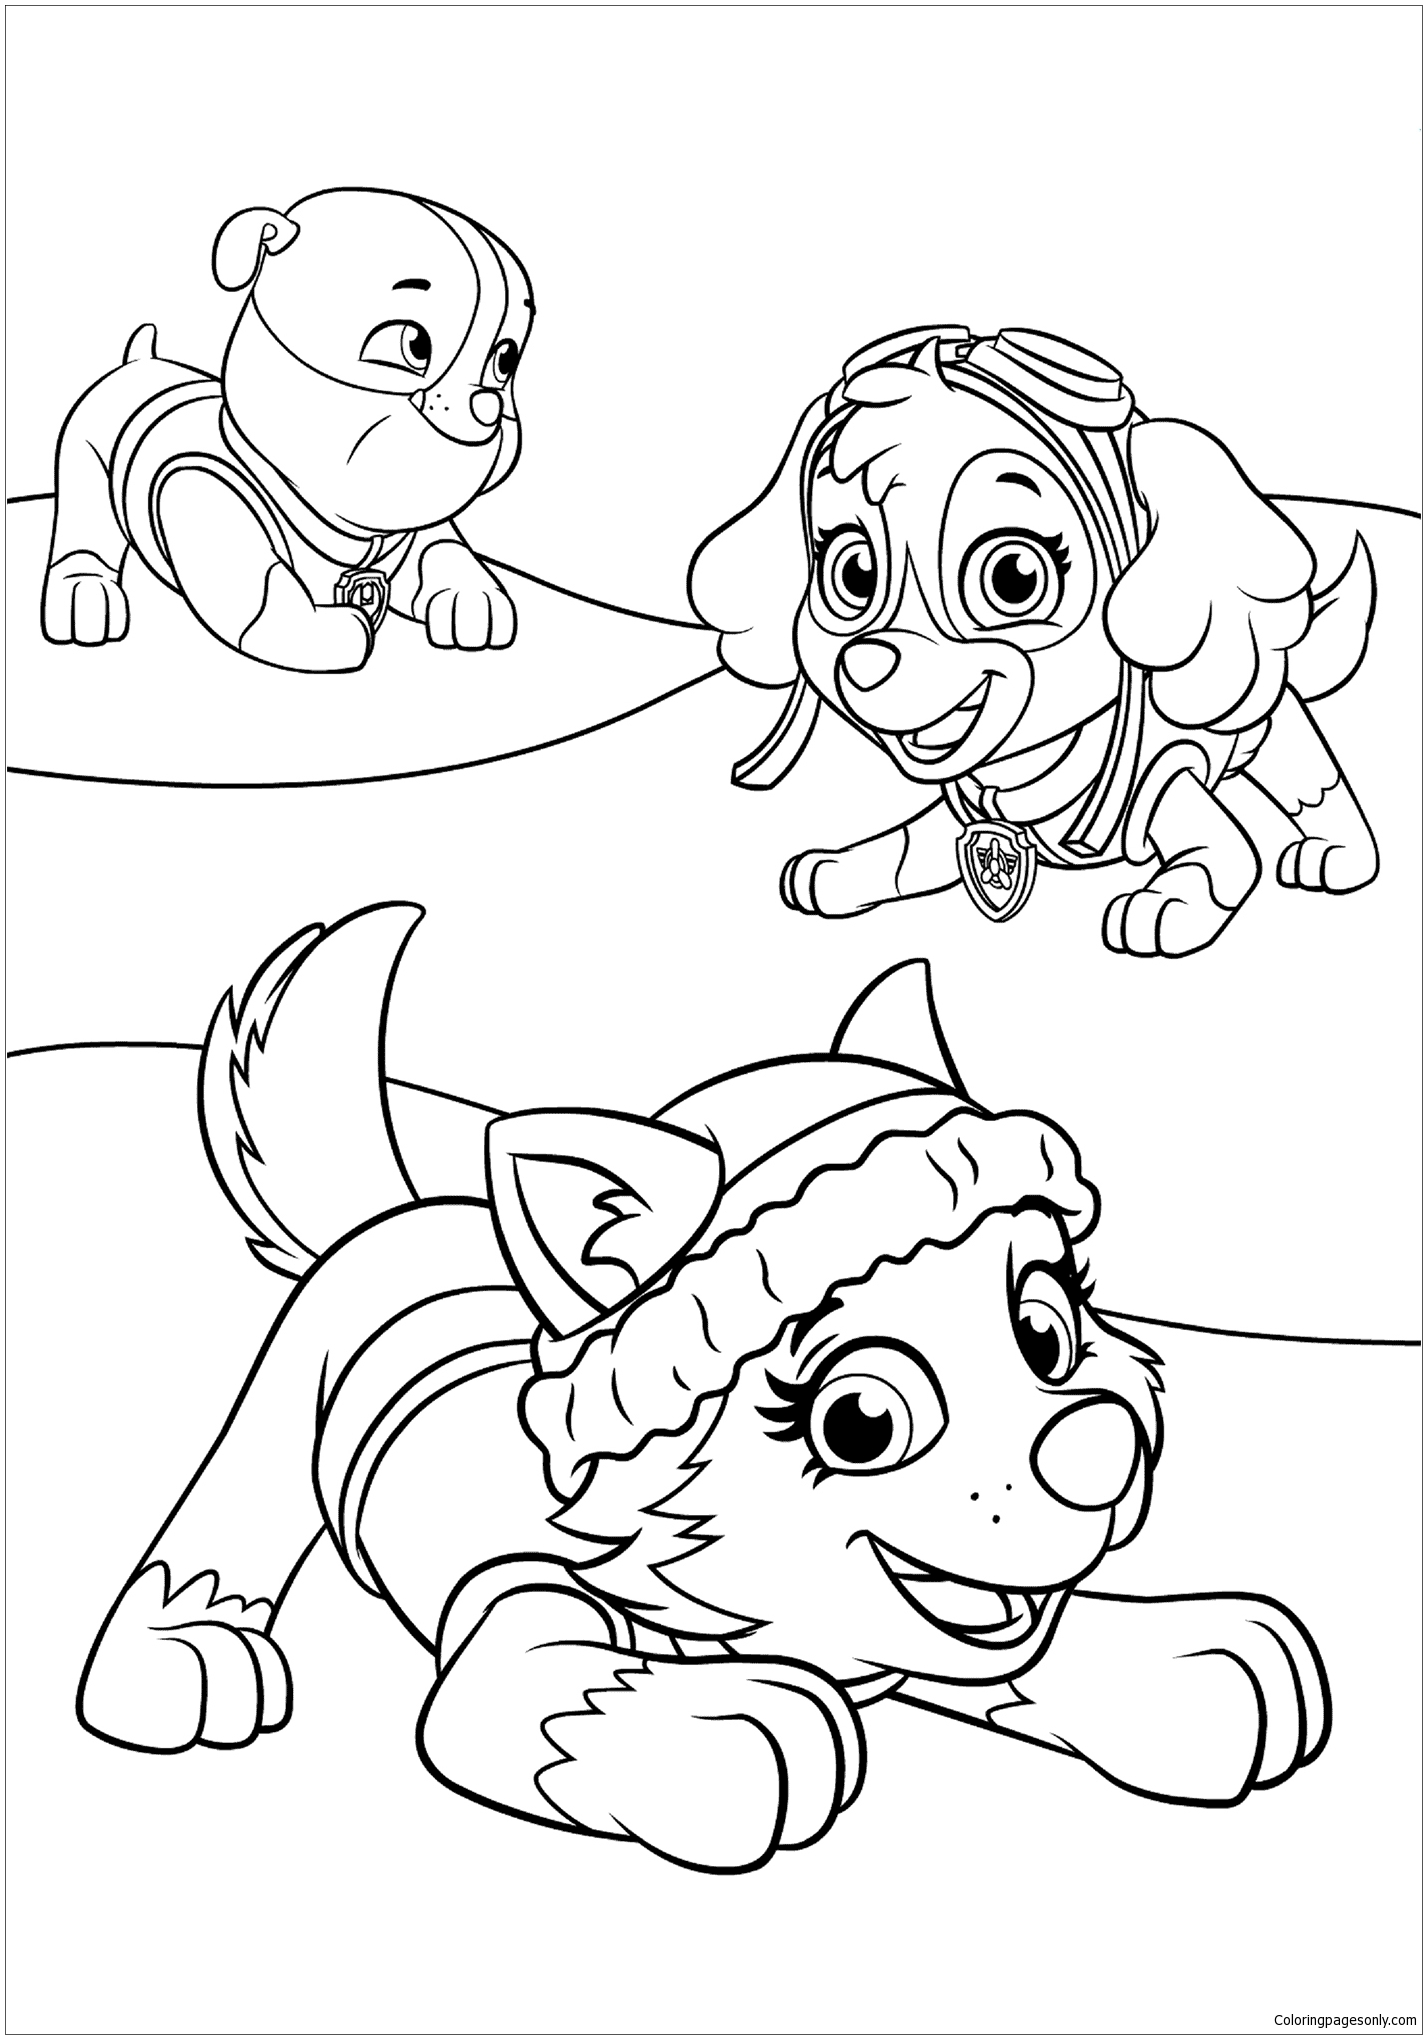 Paw Patrol 20 Coloring Page - Free Coloring Pages Online